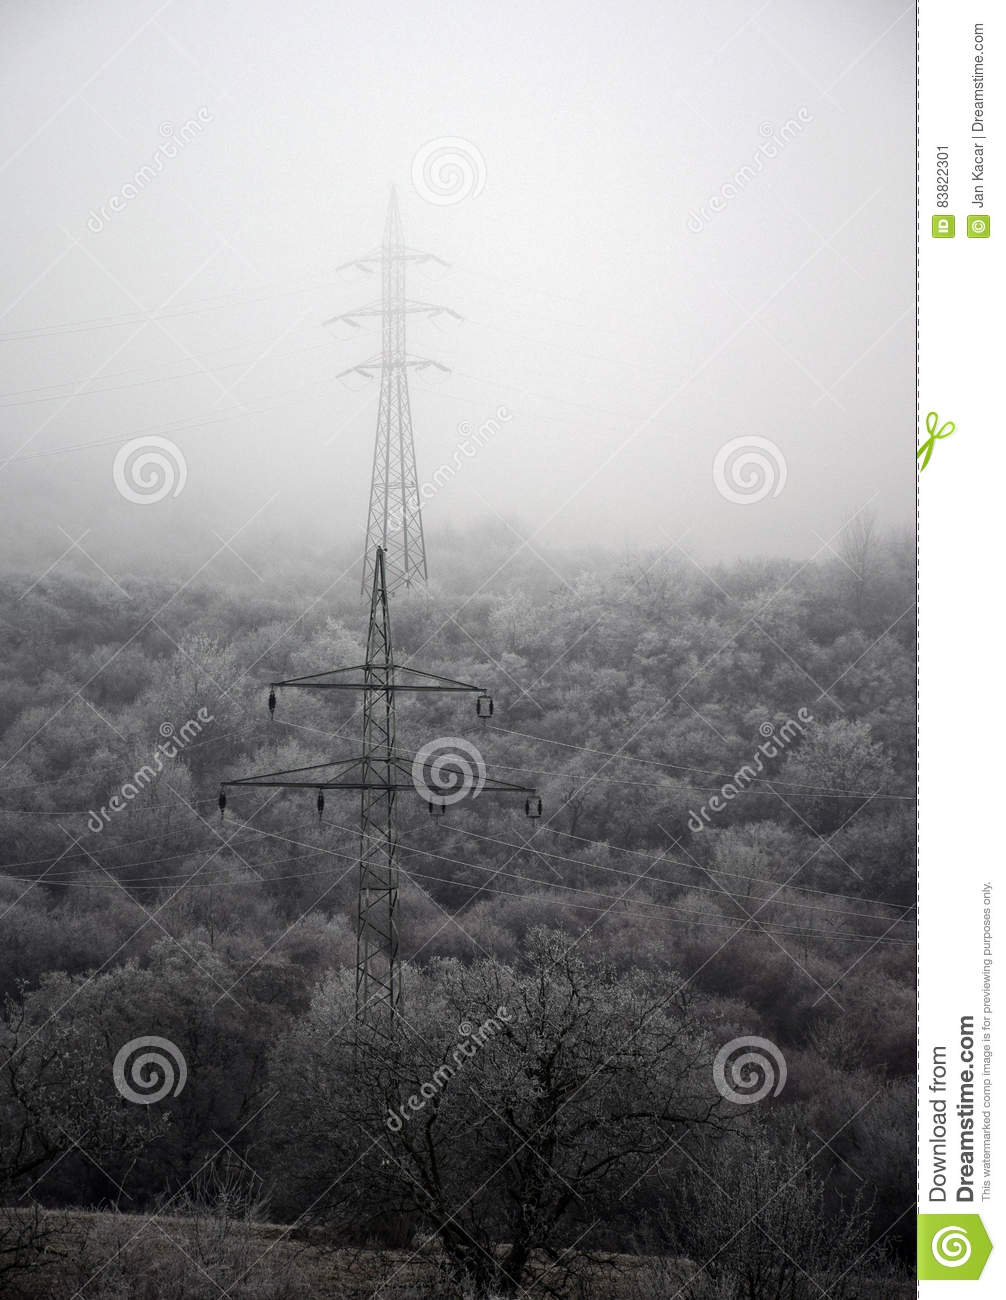 Electric poles in winter